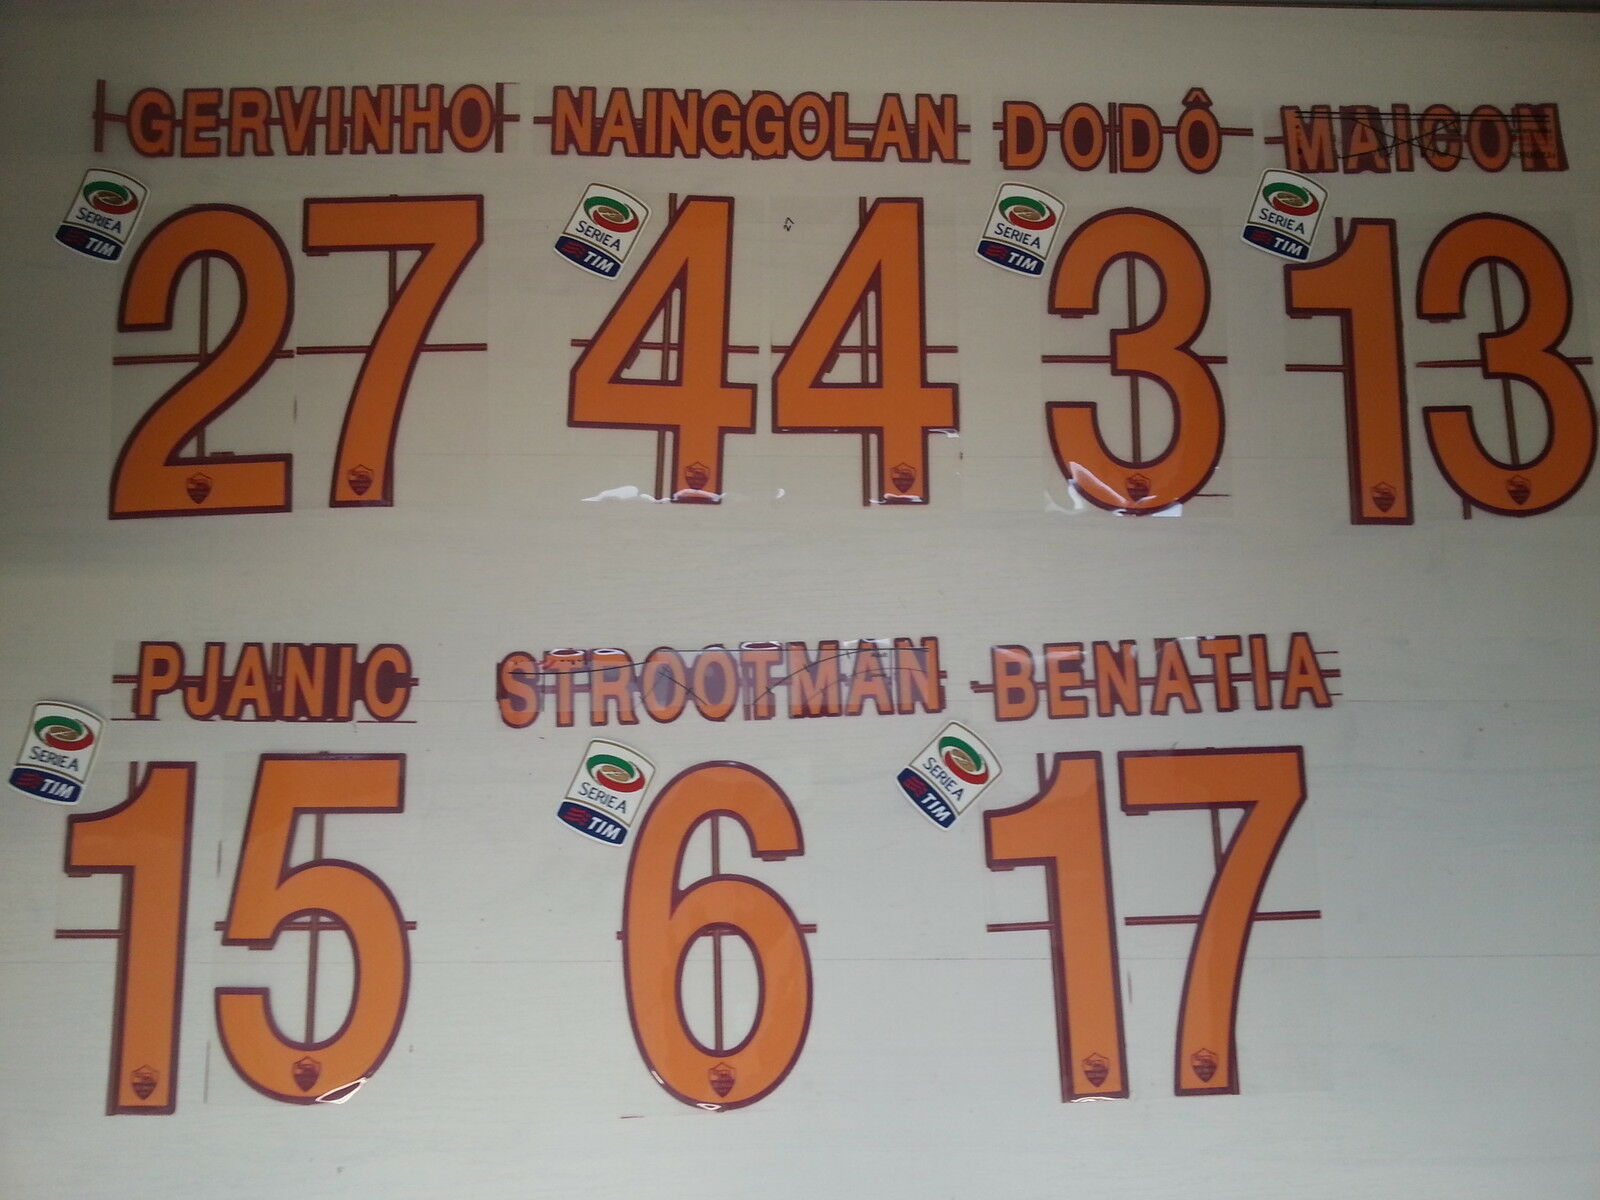 2687 ROMA NAME SET NAME UND ANZAHL ROMA TRIKOT JERSEY 2014 2013 2014 JERSEY CUSTOMIZATION 7950cb